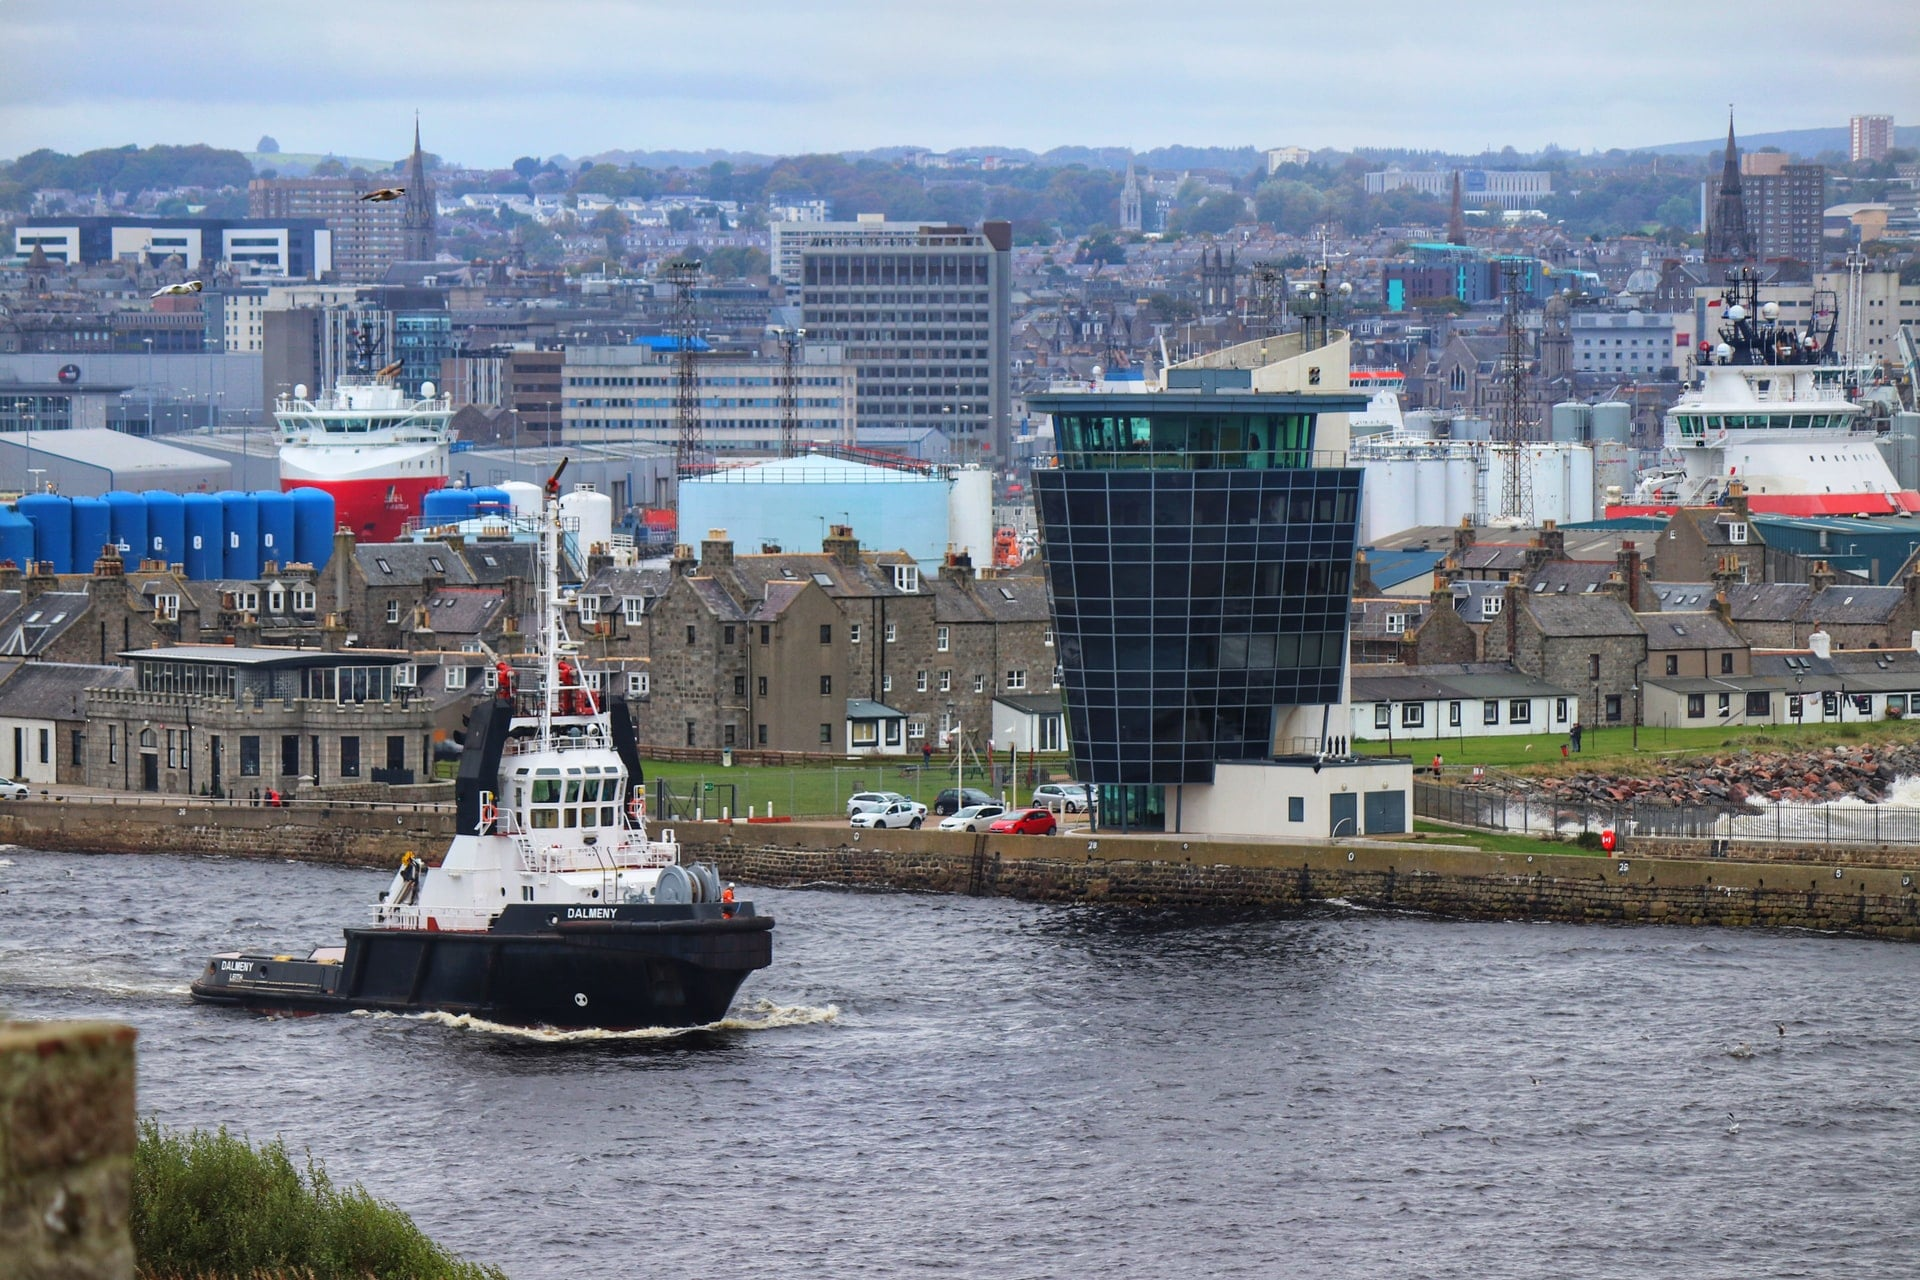 boat-going-down-aberdeen-harbour-river-by-city